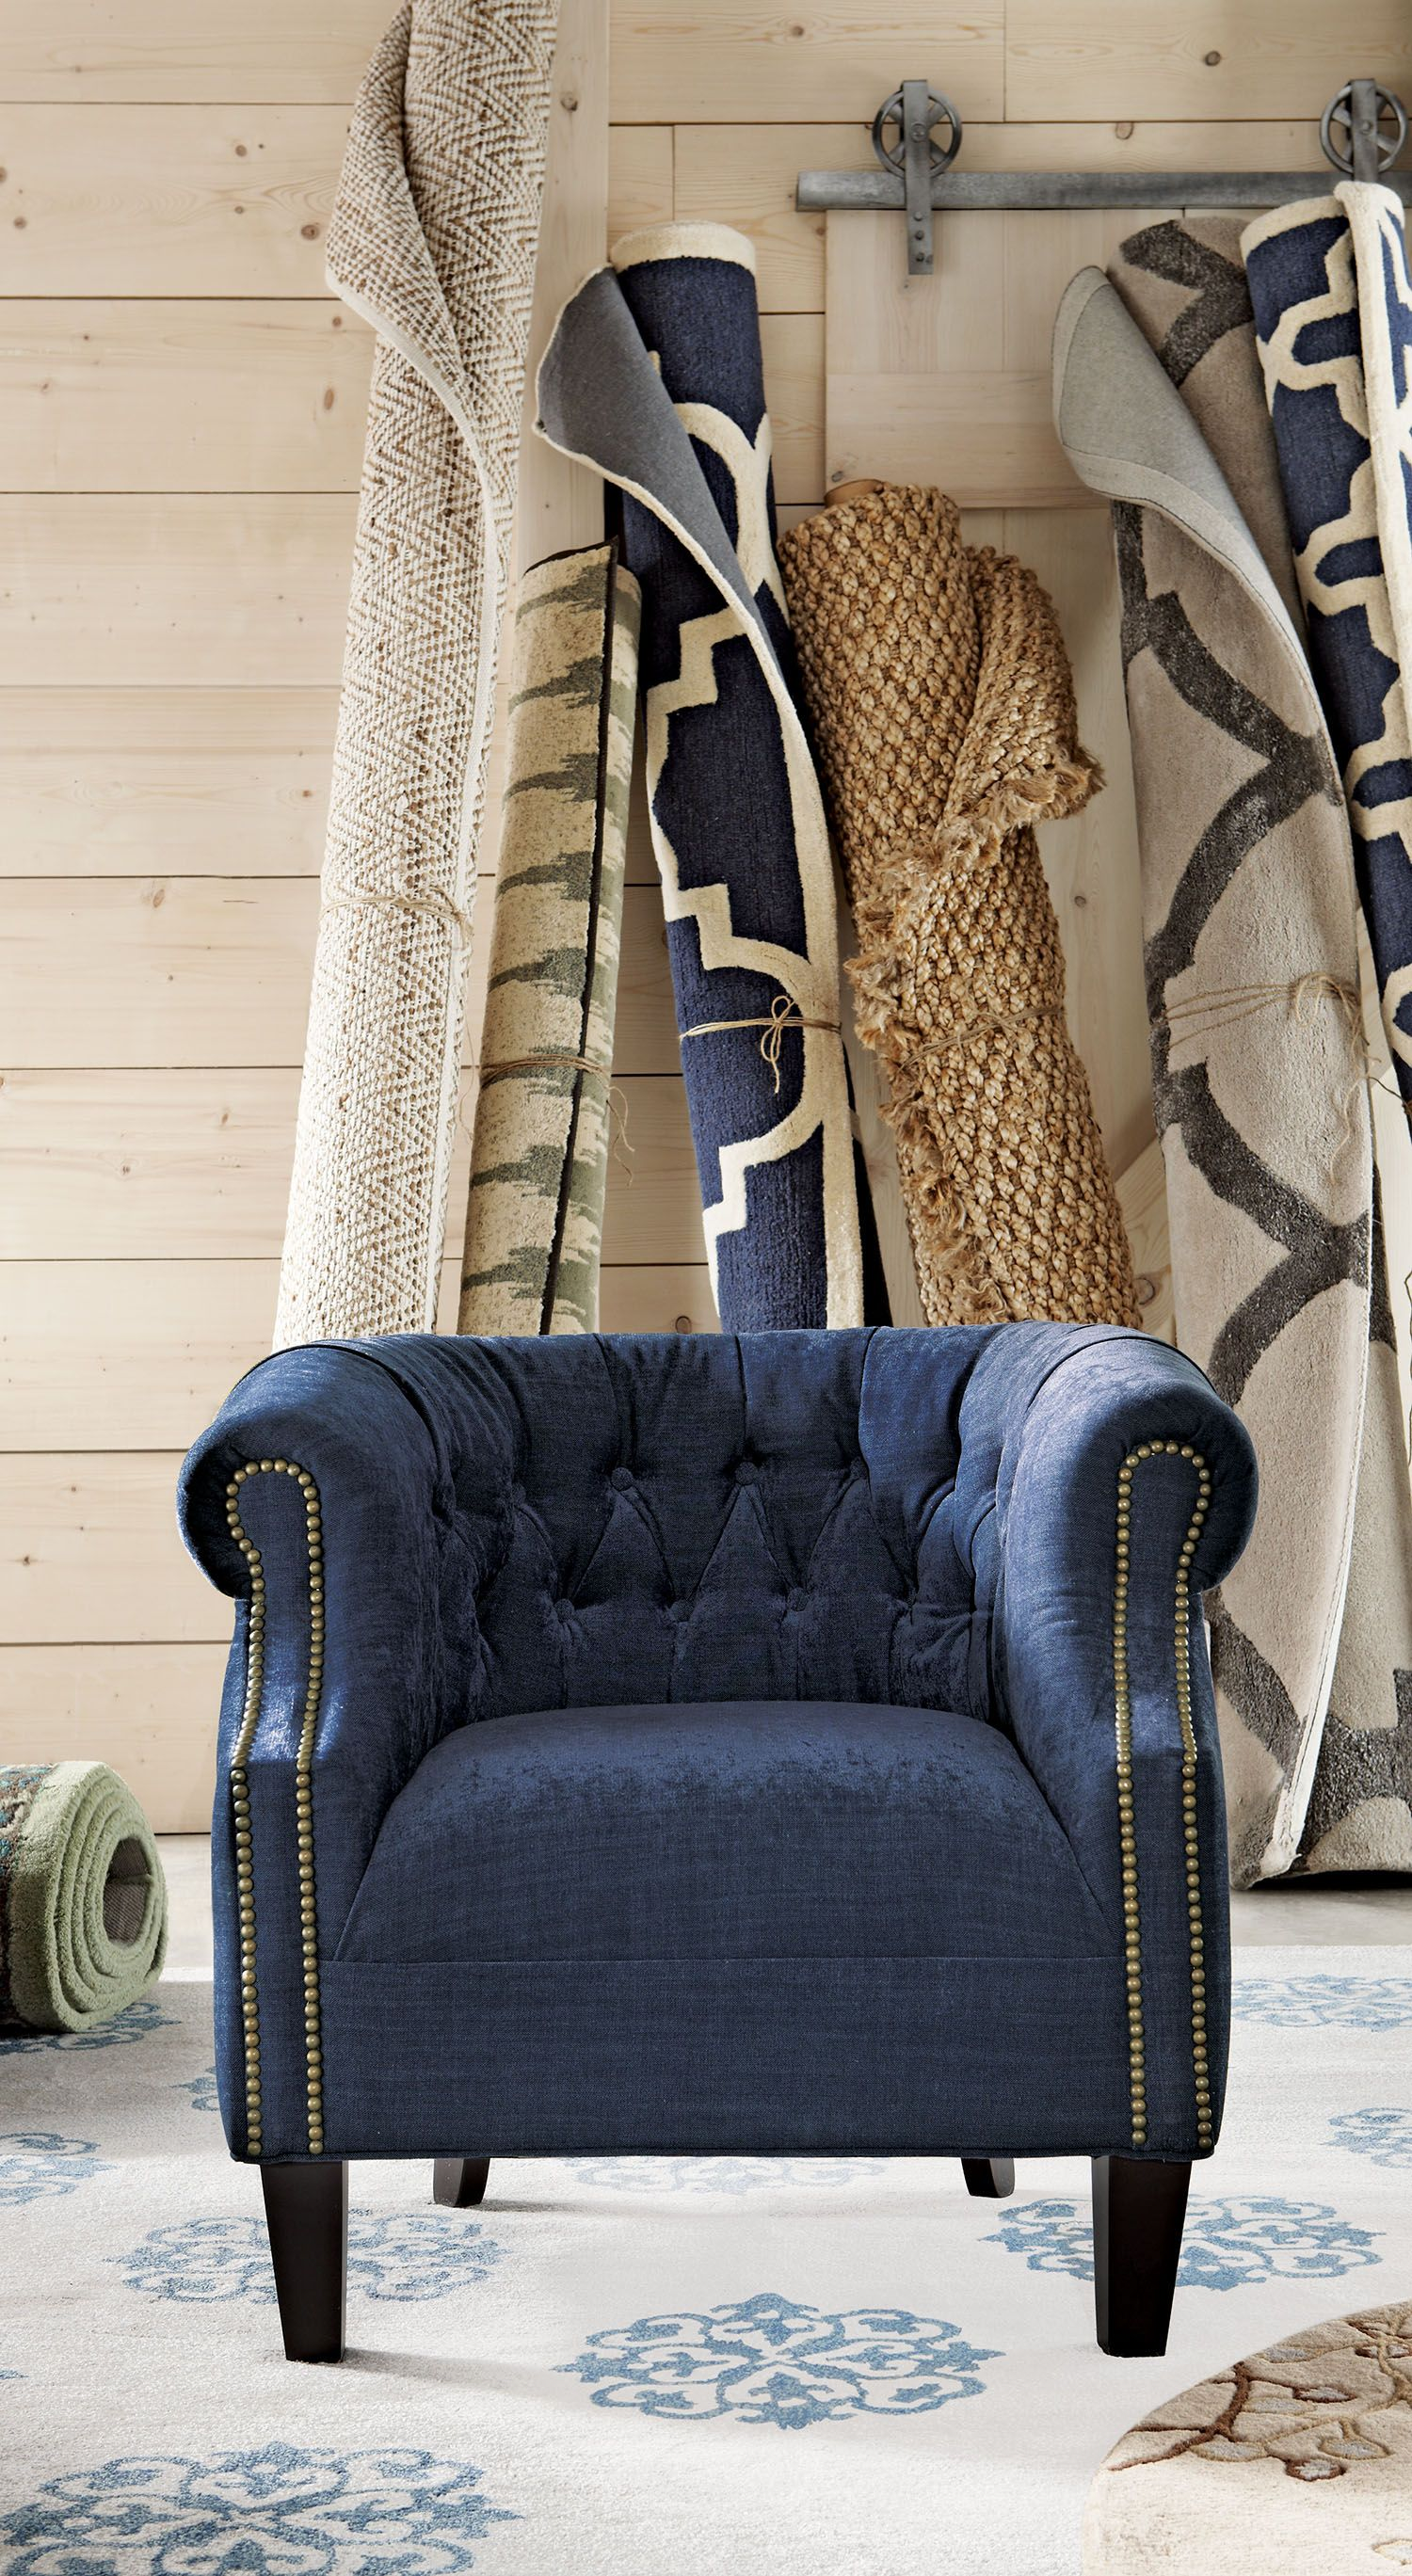 This barrel chair is the perfect accent seat for your living room, bedroom or home office. With 45+ solid and patterned fabric options, you can customize this chair to fit your room's design. How great is that? Plus, choose from different nailhead and leg finishes based on your preference. Style your room the way you like with this custom chair. Available at Home Decorators Collection.